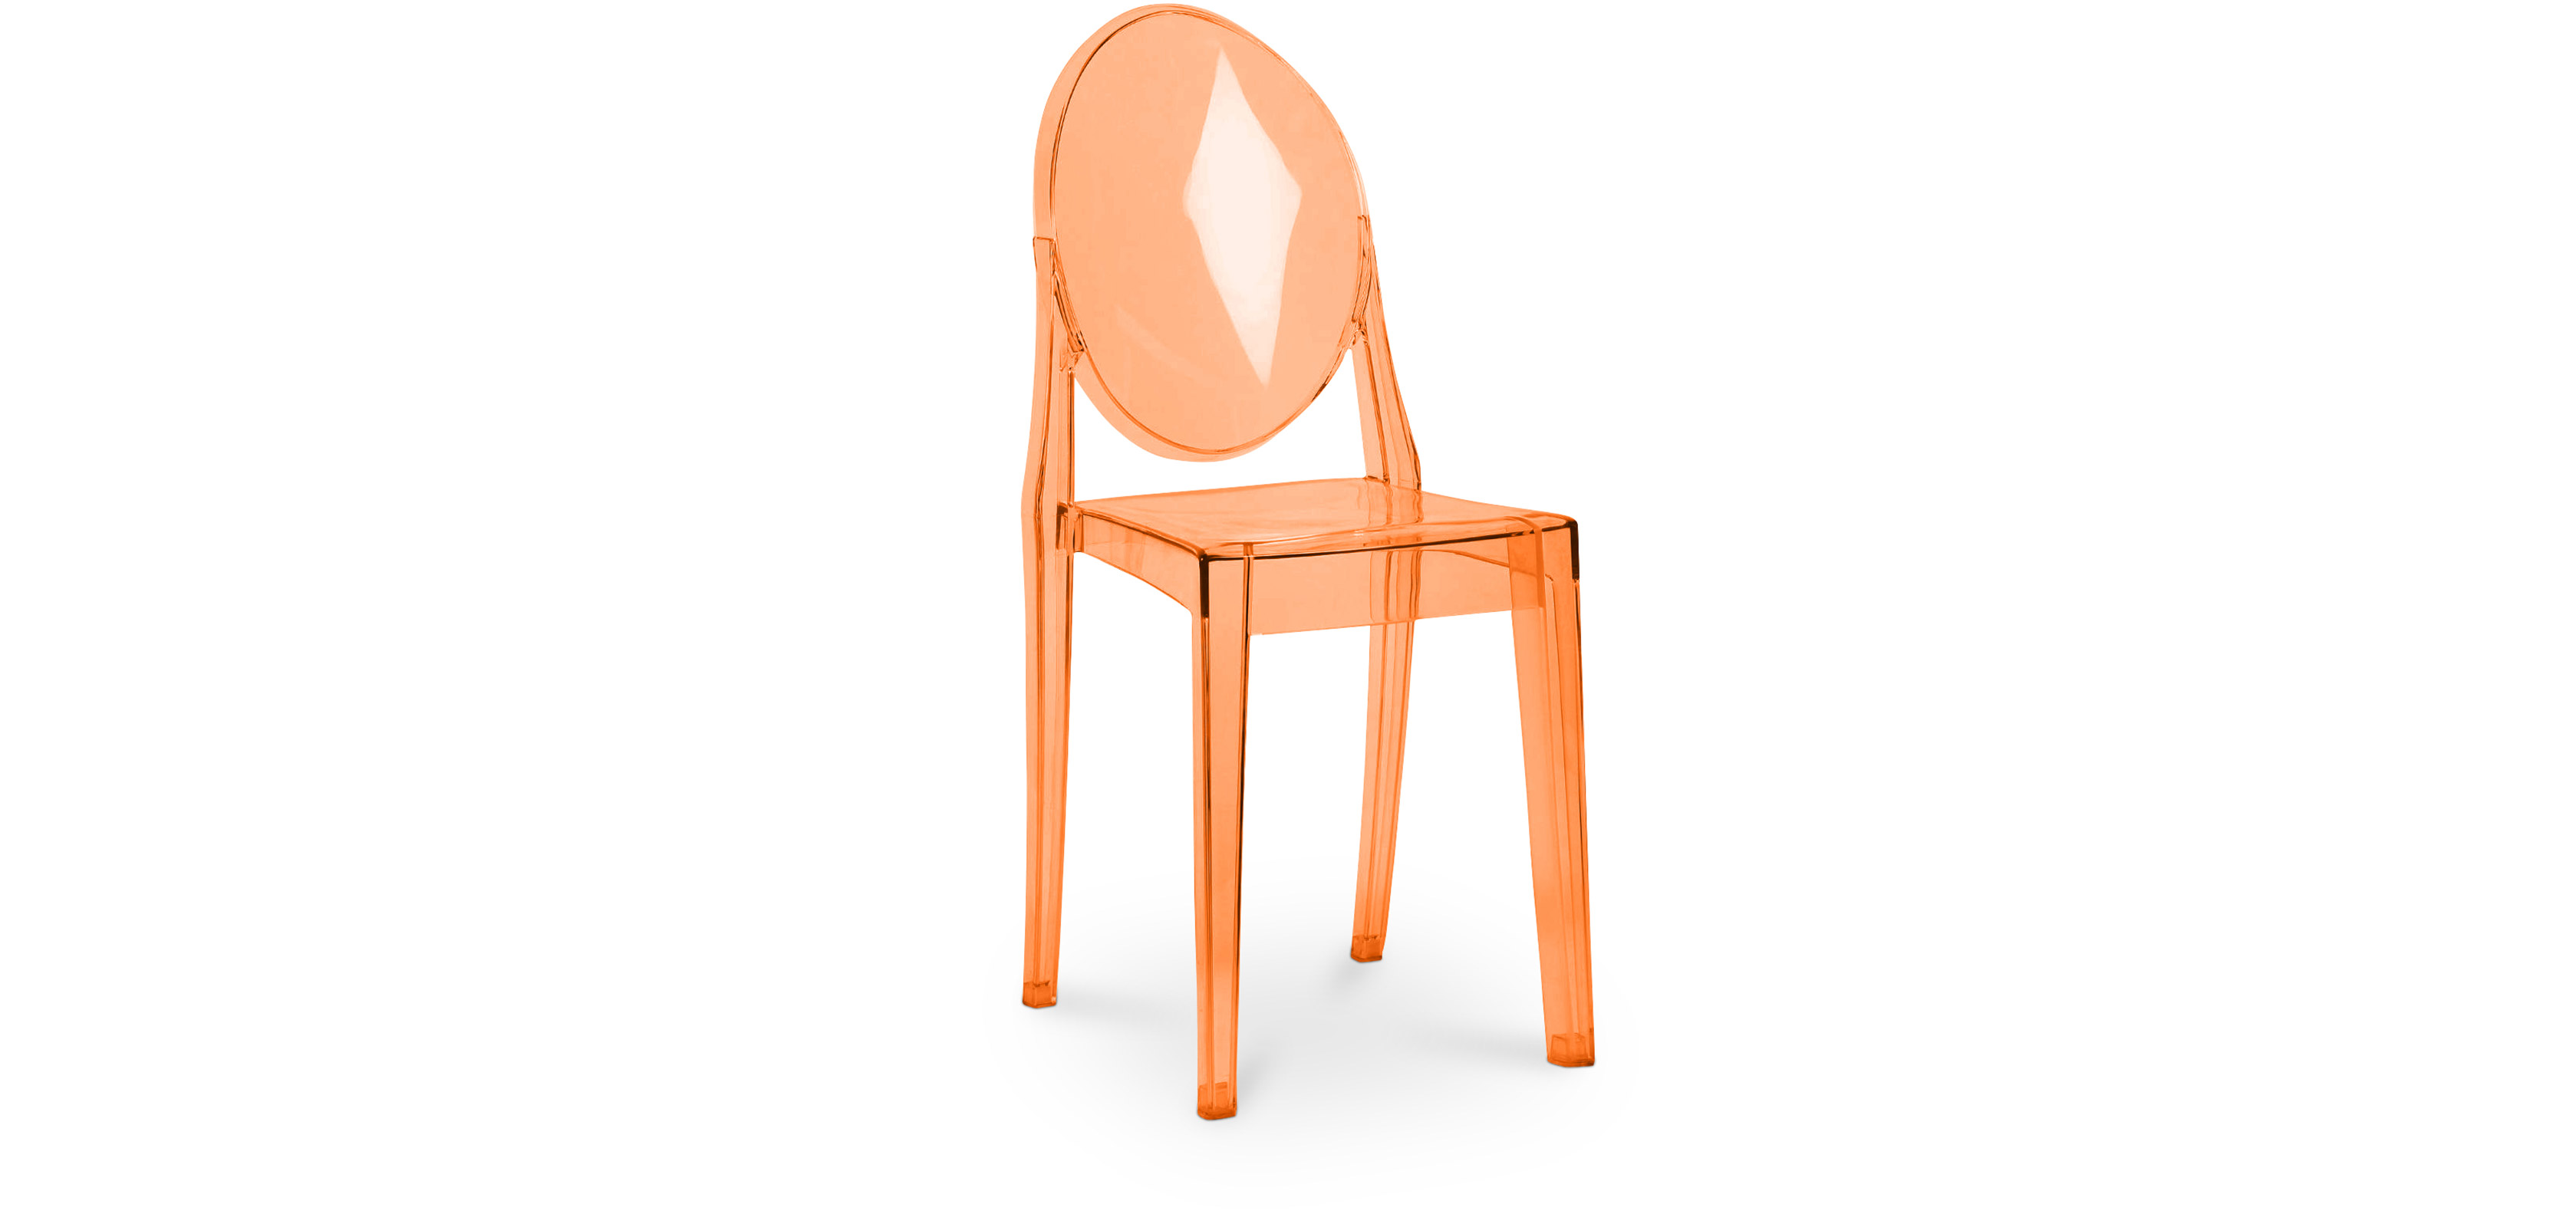 by stool archived charles kartell stools full plastic of hudson ghost bar chair masters for emeco size philippe starck